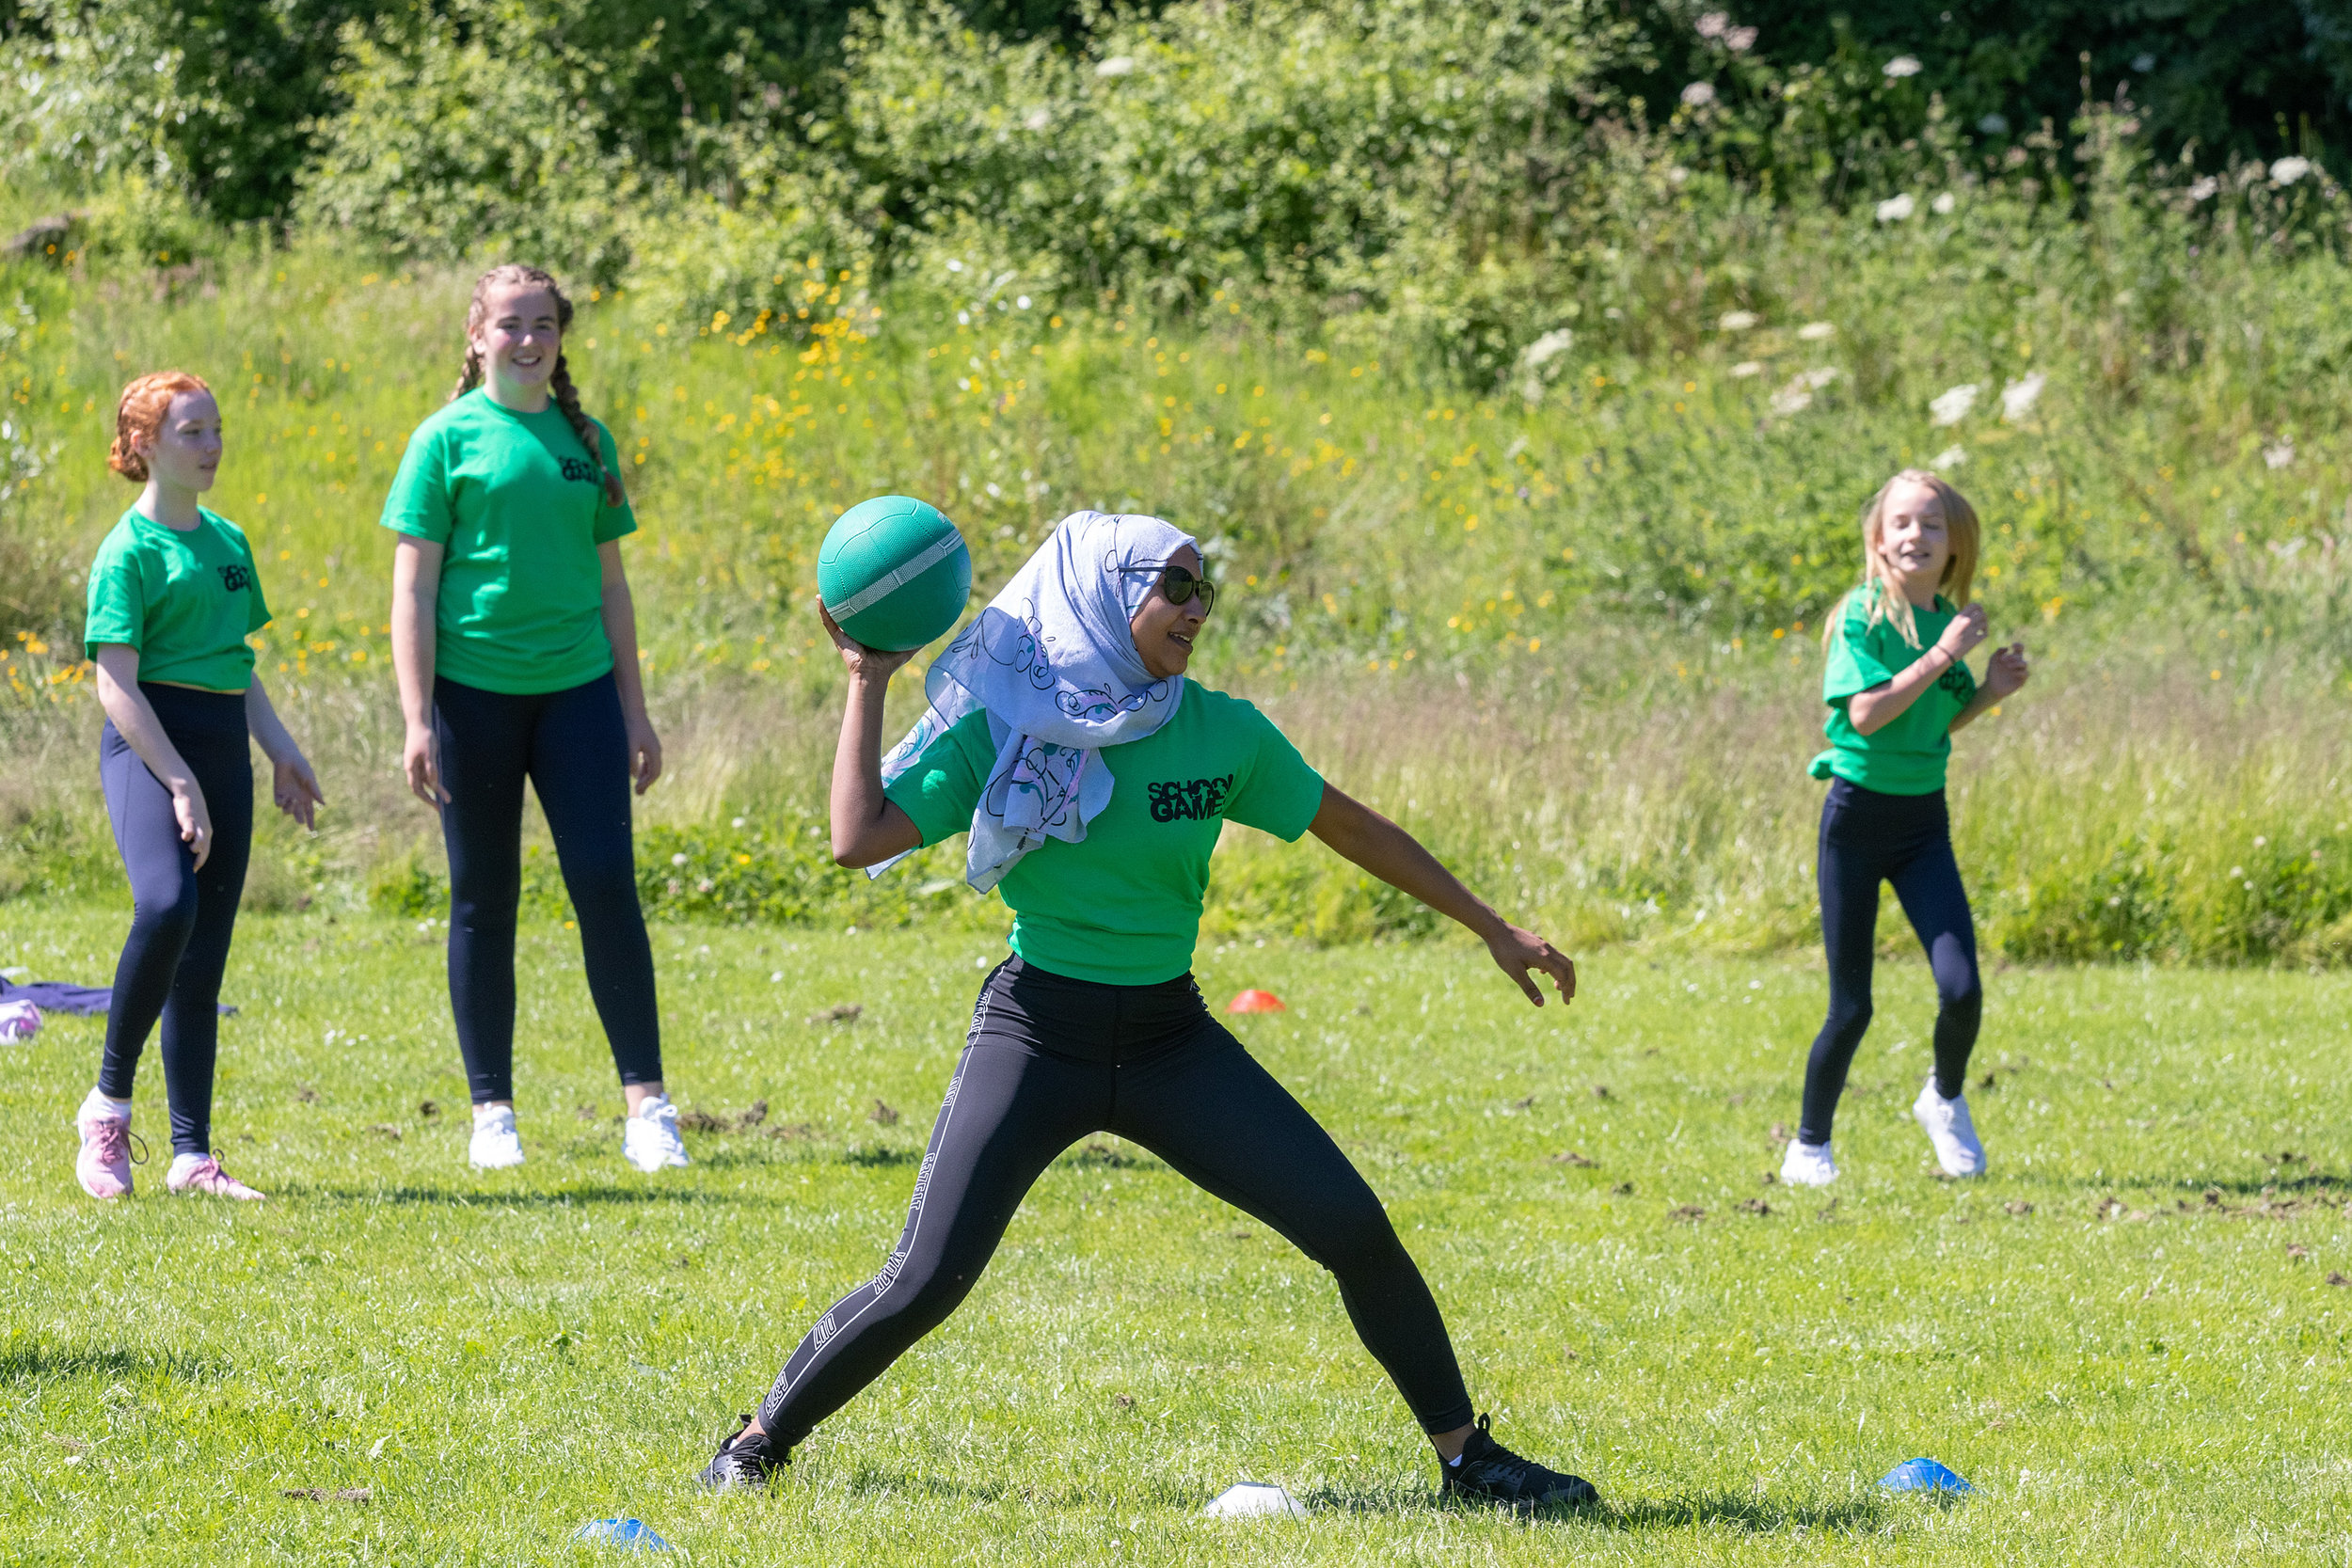 7682-114- Summer School Games 2019.jpg